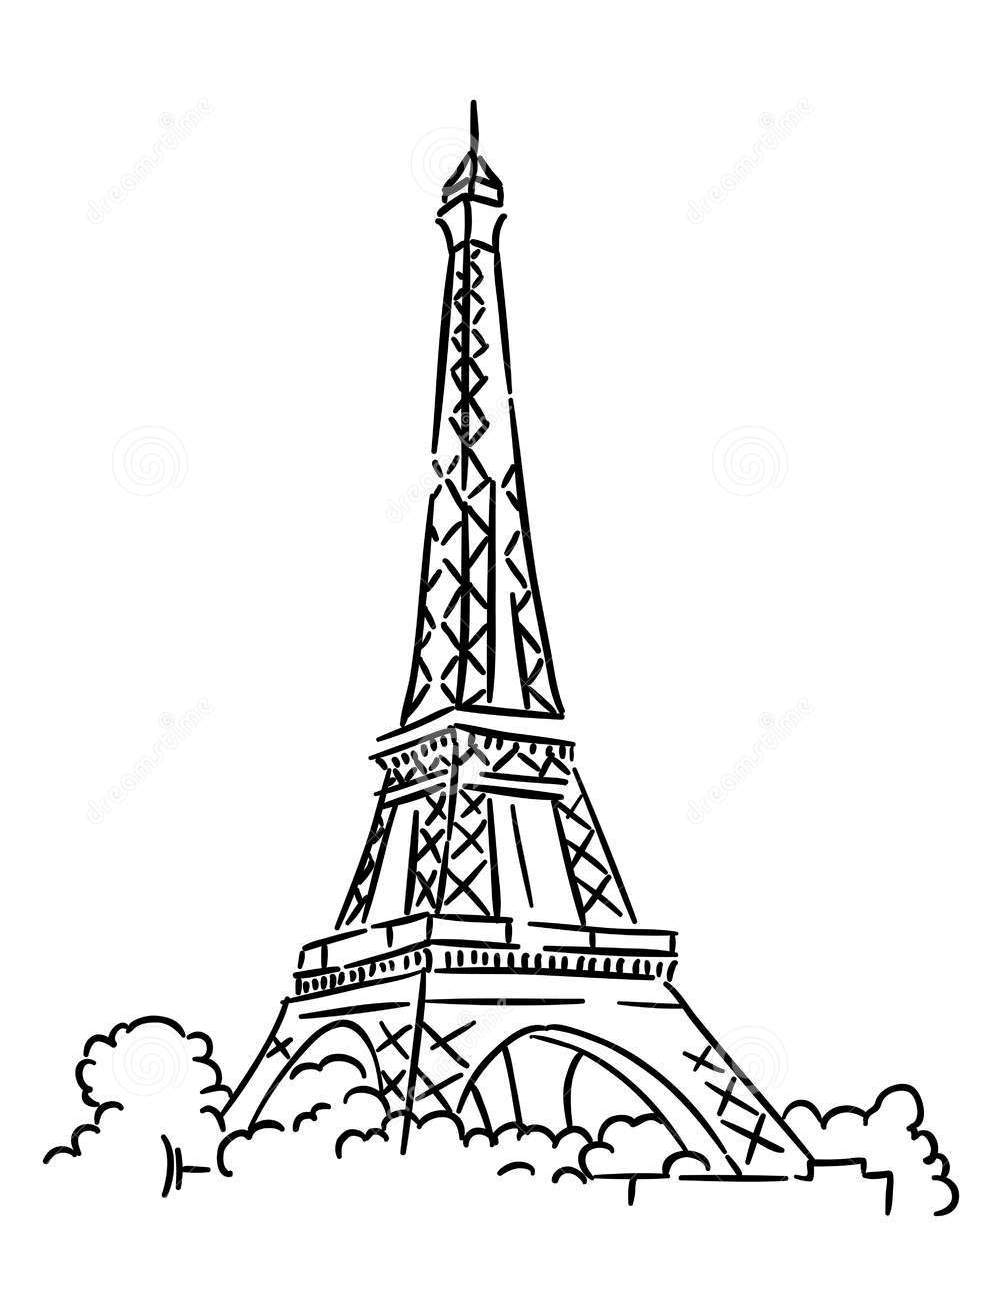 how to draw the eiffel tower easy step by step eiffel tower drawing easy at getdrawings free download eiffel tower how to easy step by the step draw